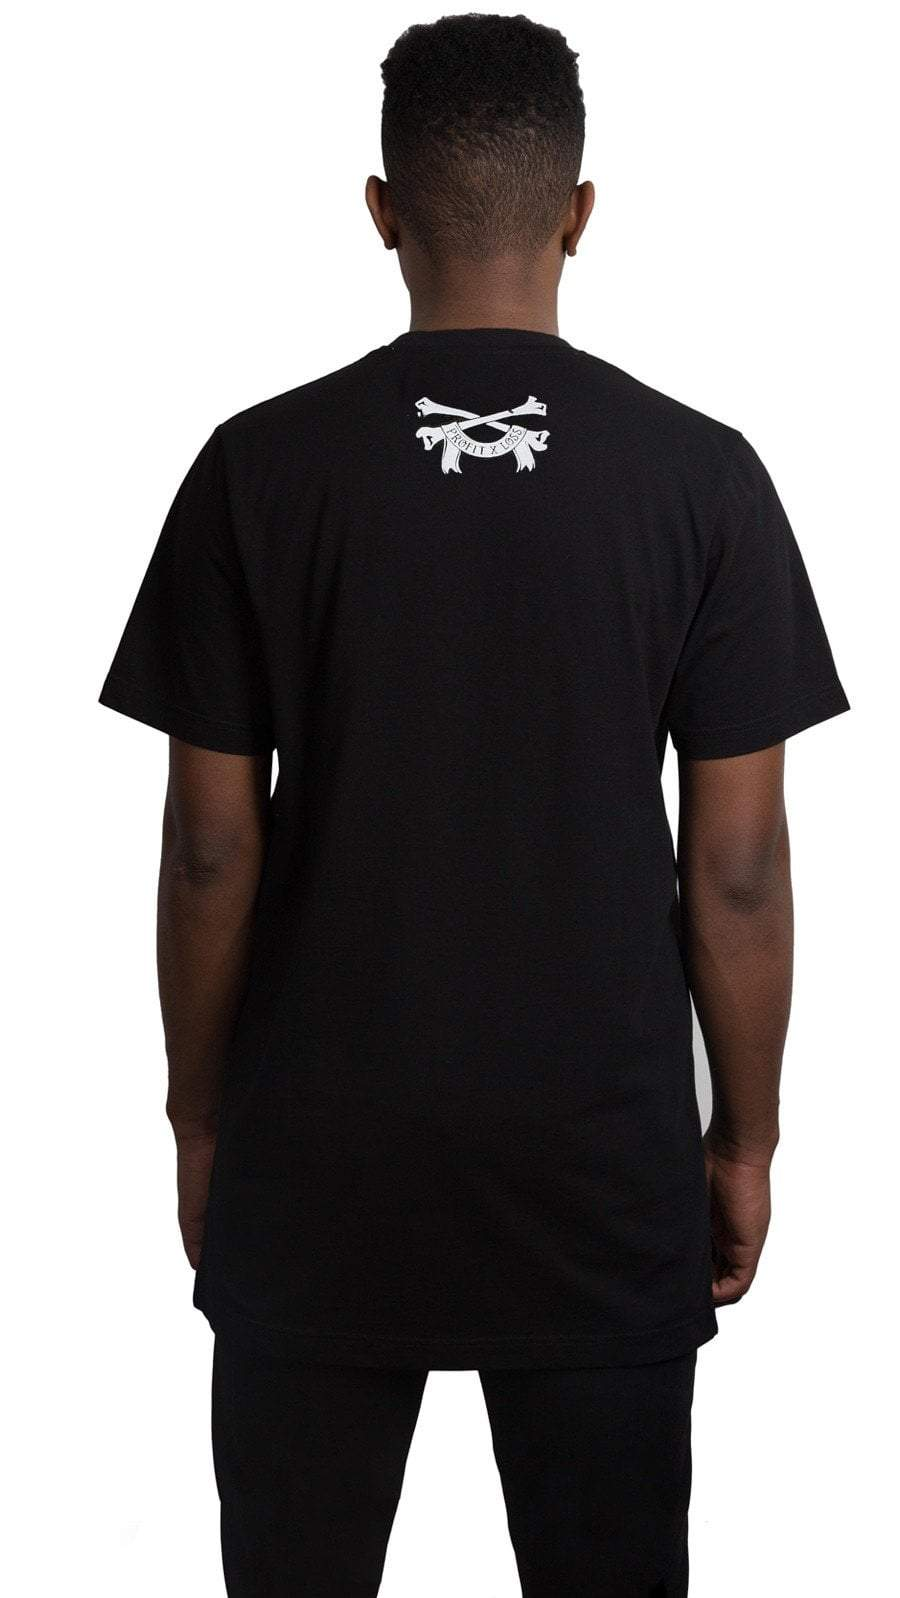 profitxloss.com Shirts Select Size / Black SOLD OUT